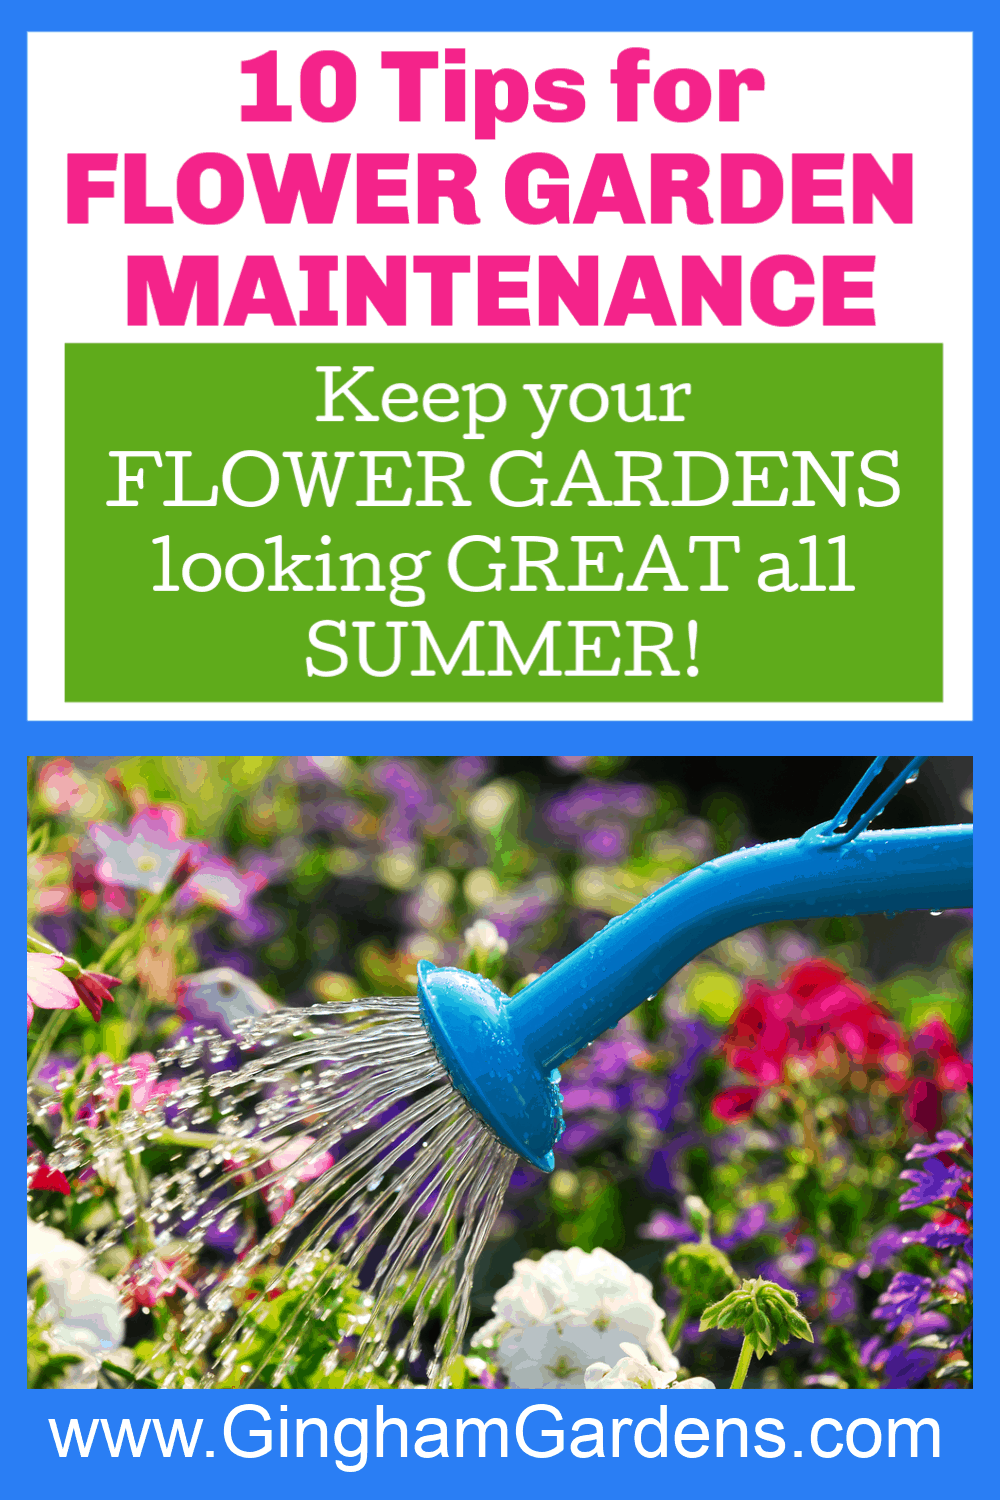 Image of Watering Can with Text Overlay - Flower Garden Maintenance